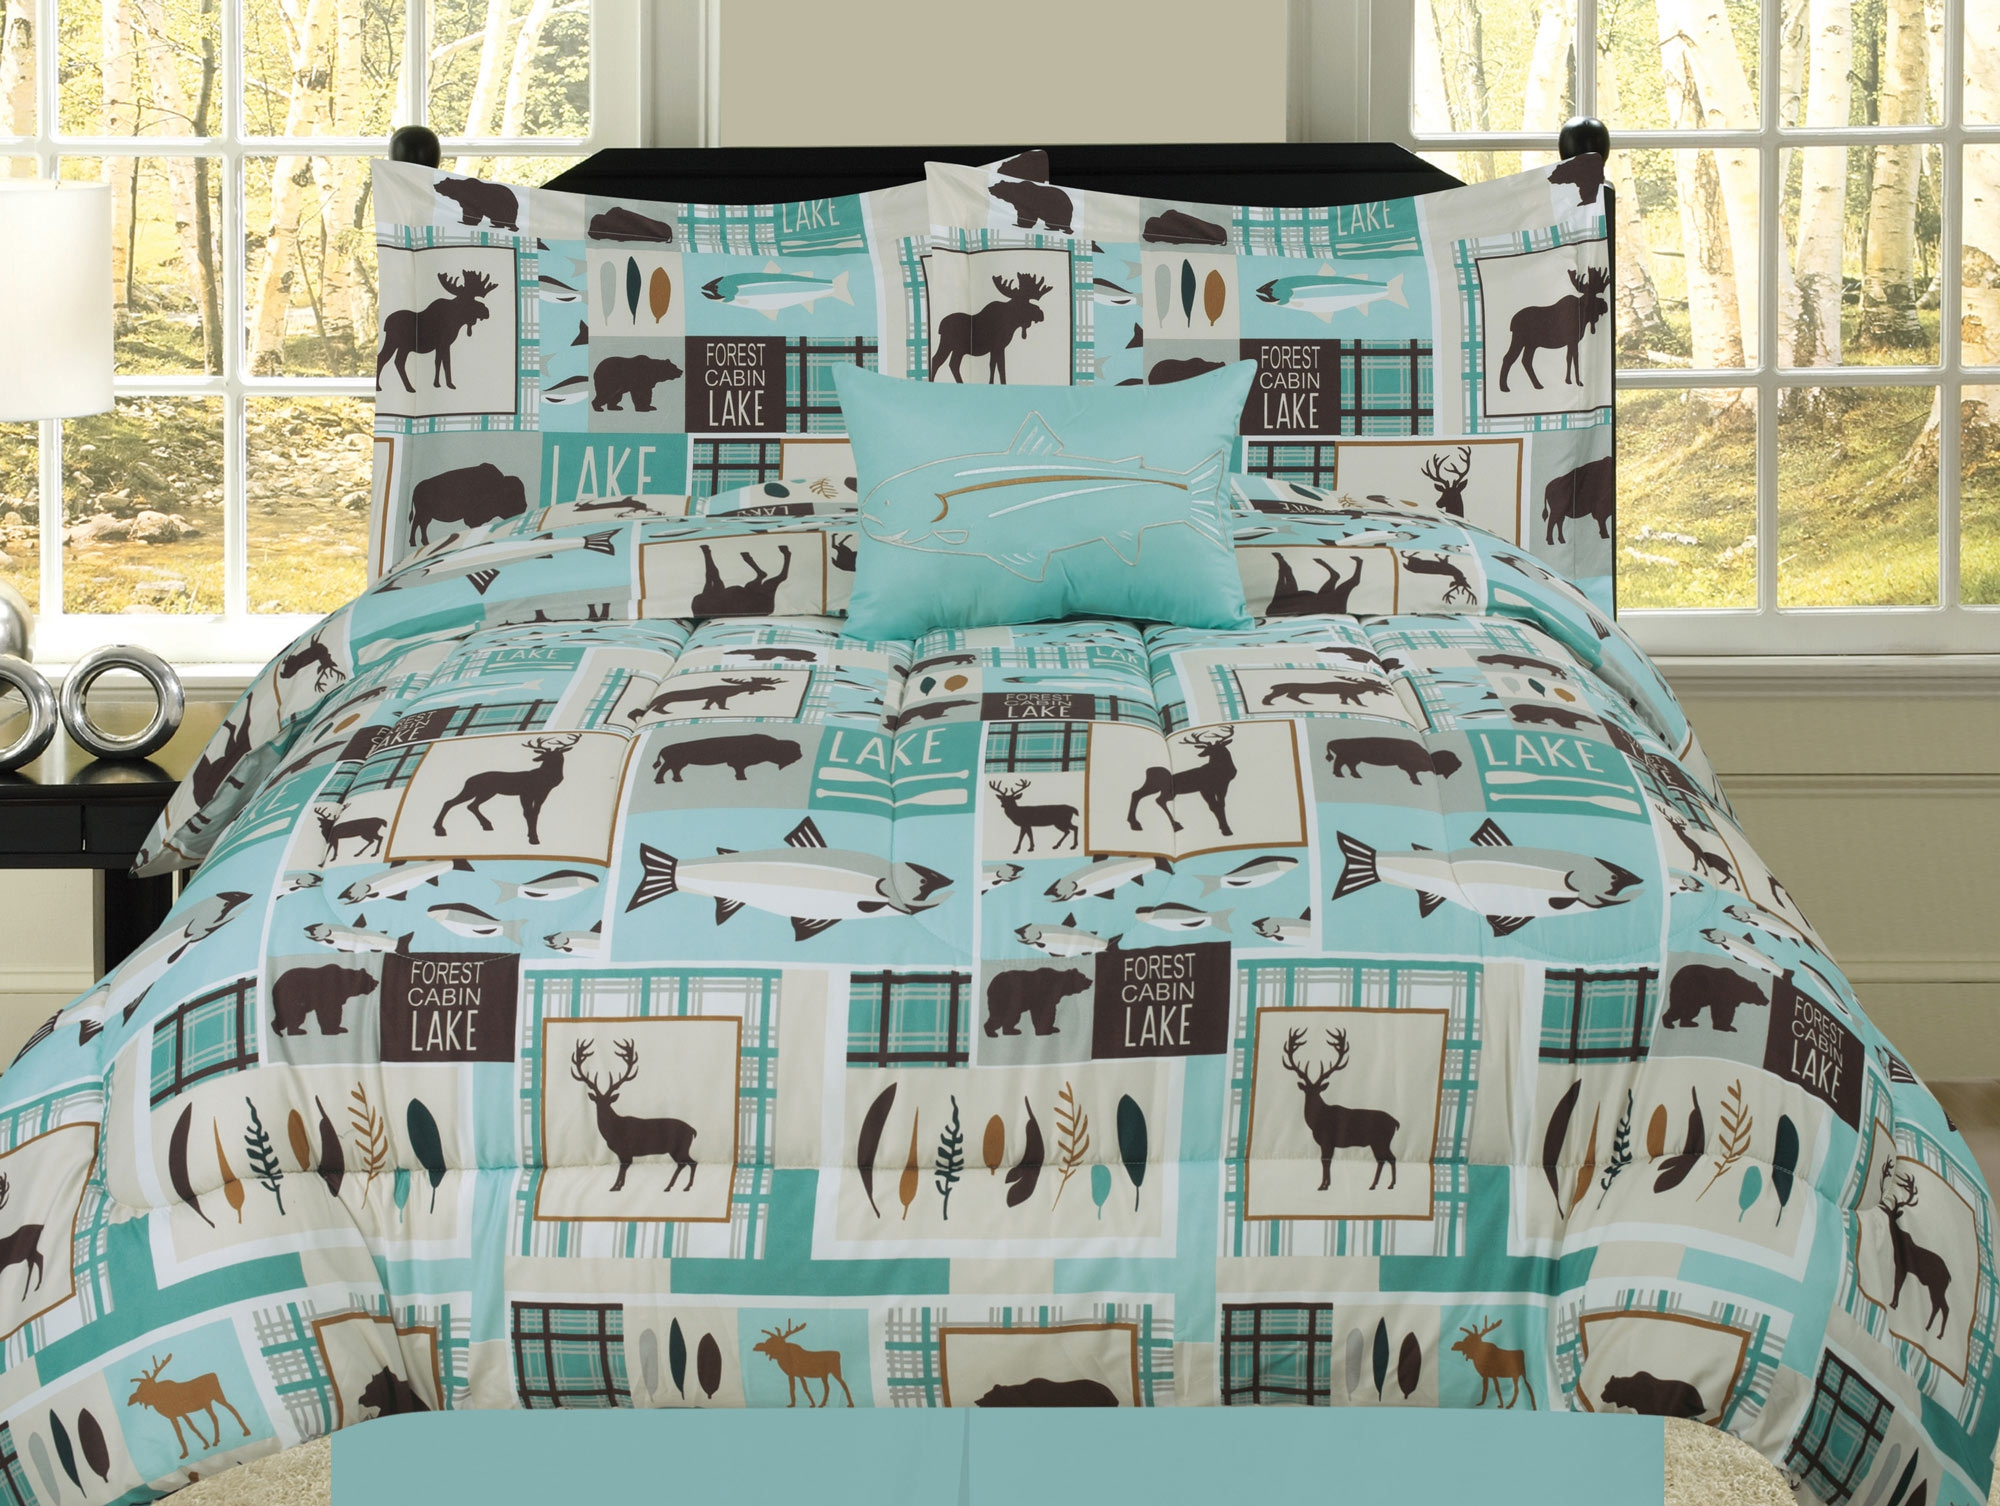 Queen Fishing Lakehouse Cabin Lodge Comforter Bedding Set Bear Fish Deer Rustic Brown Blue And Teal Walmart Com Walmart Com